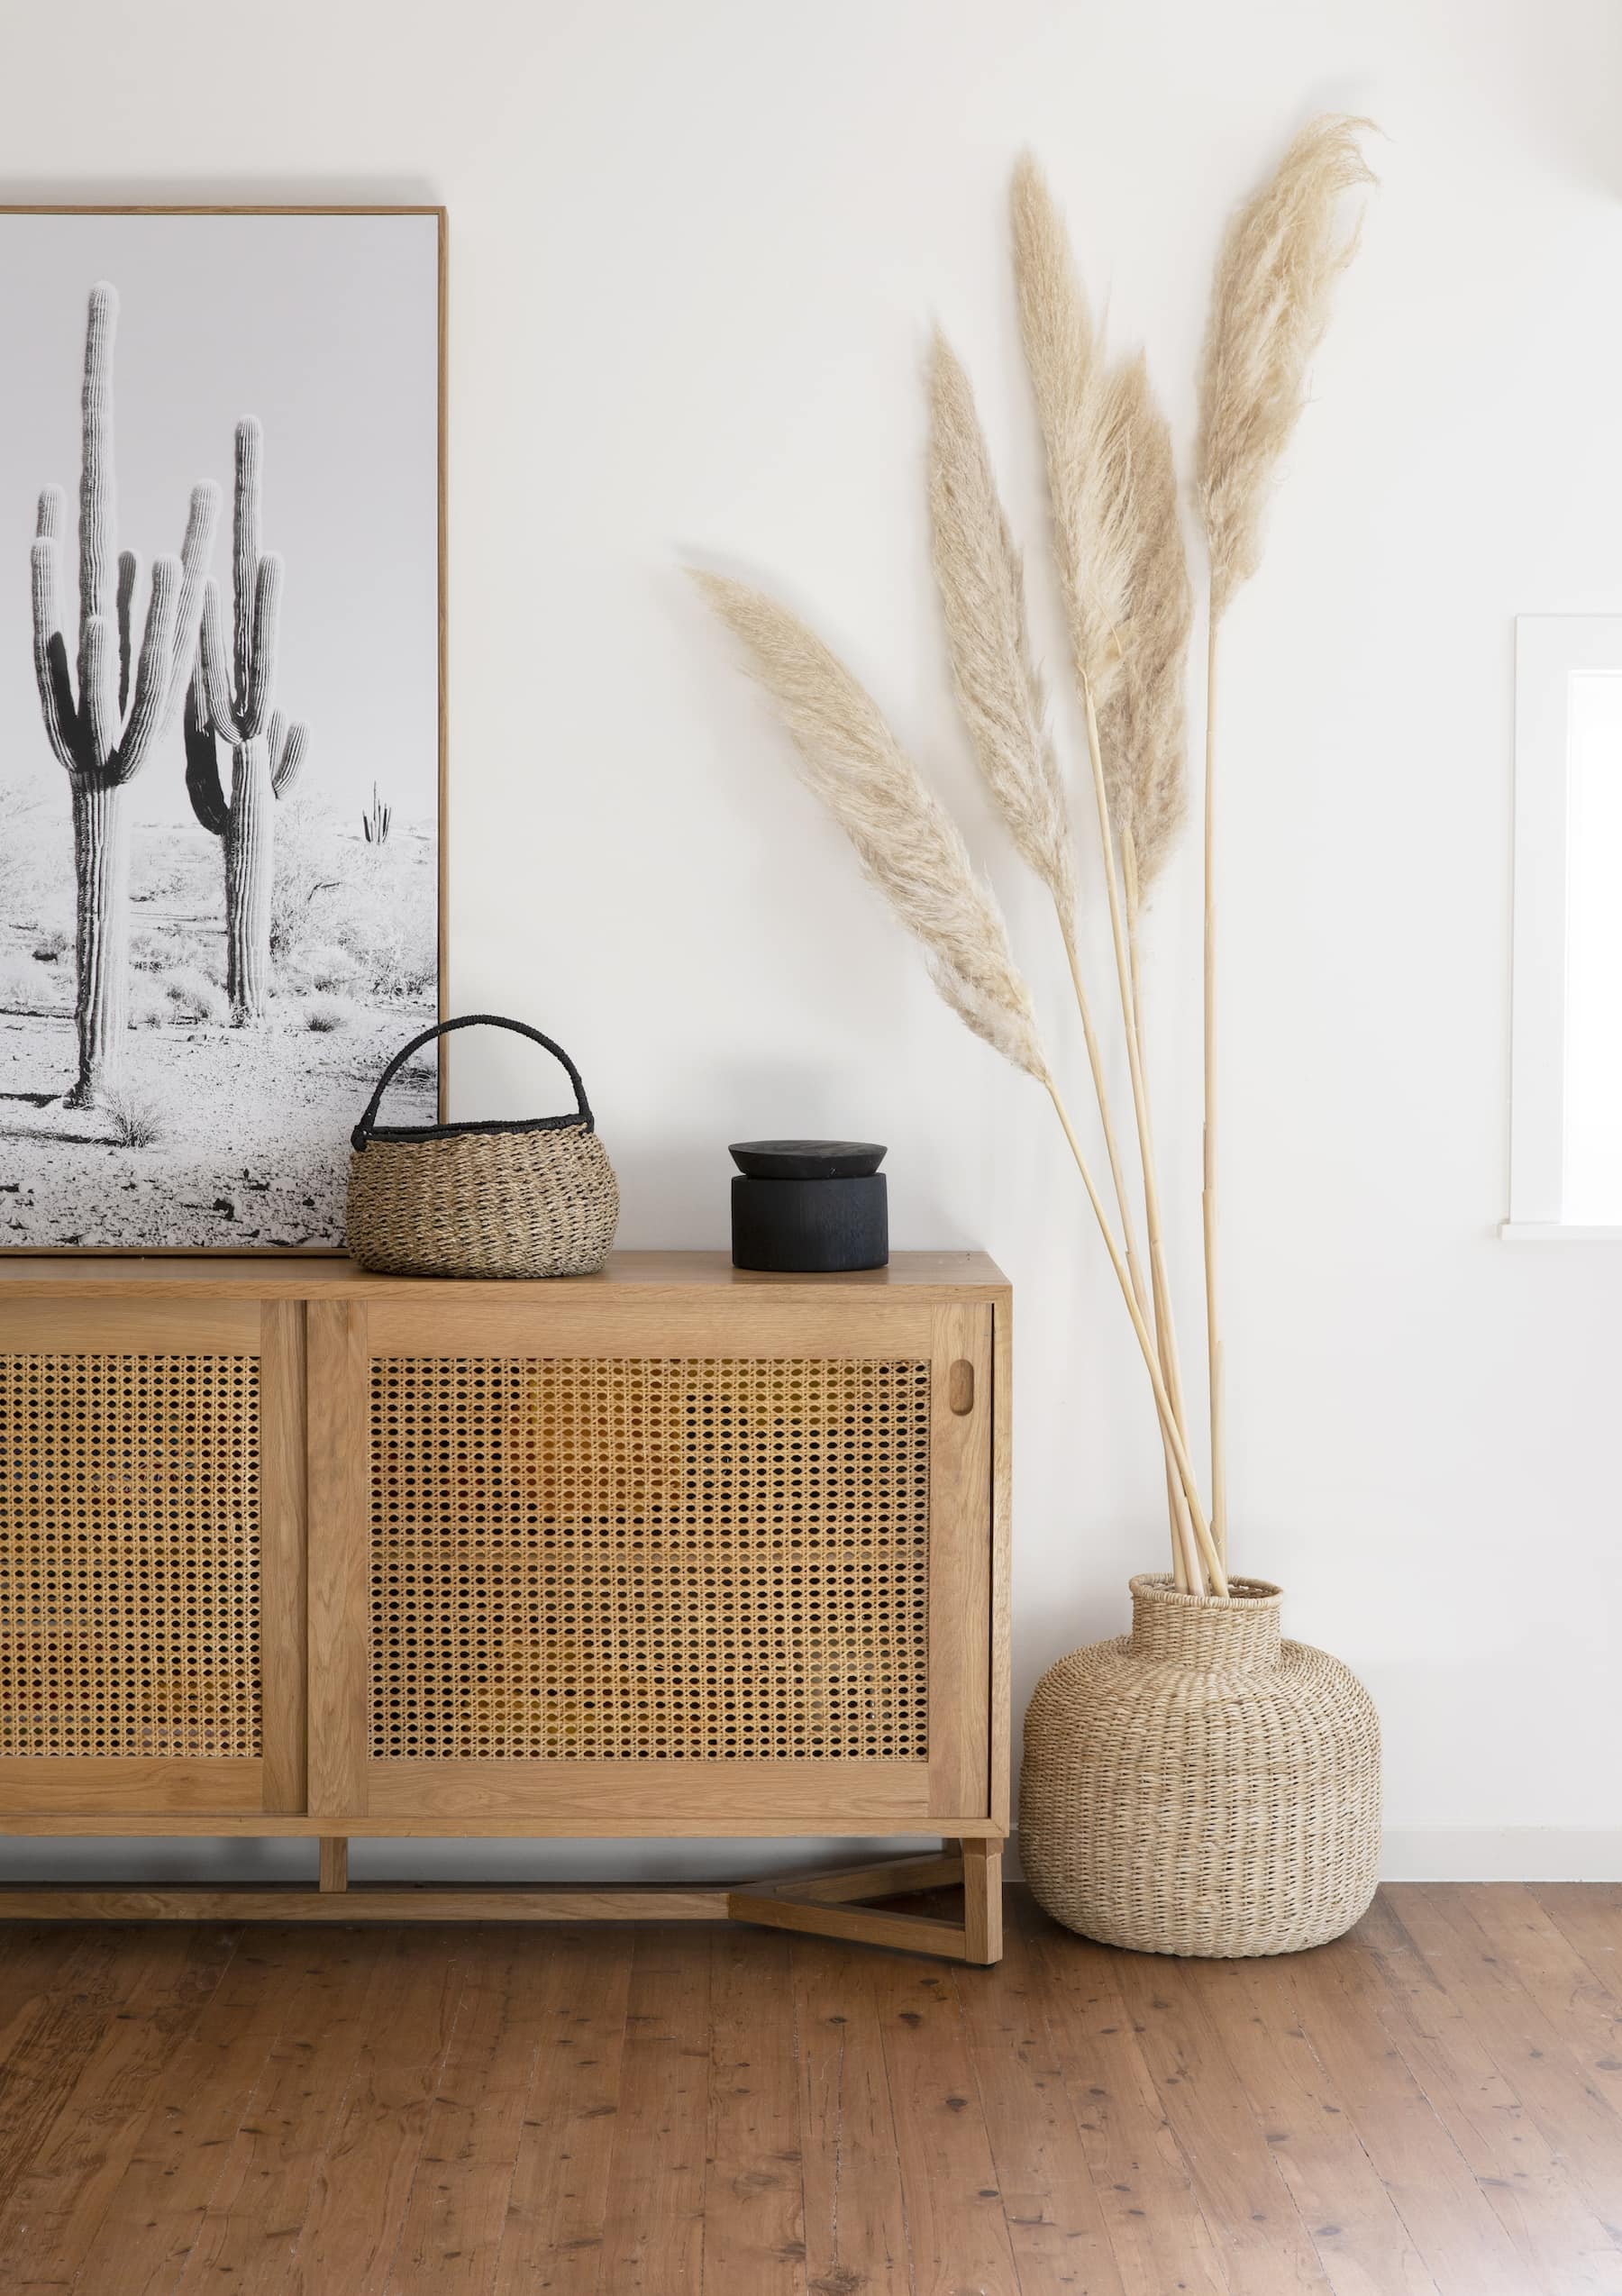 rattan sideboard in bohemian style room with boho art neutral interior design